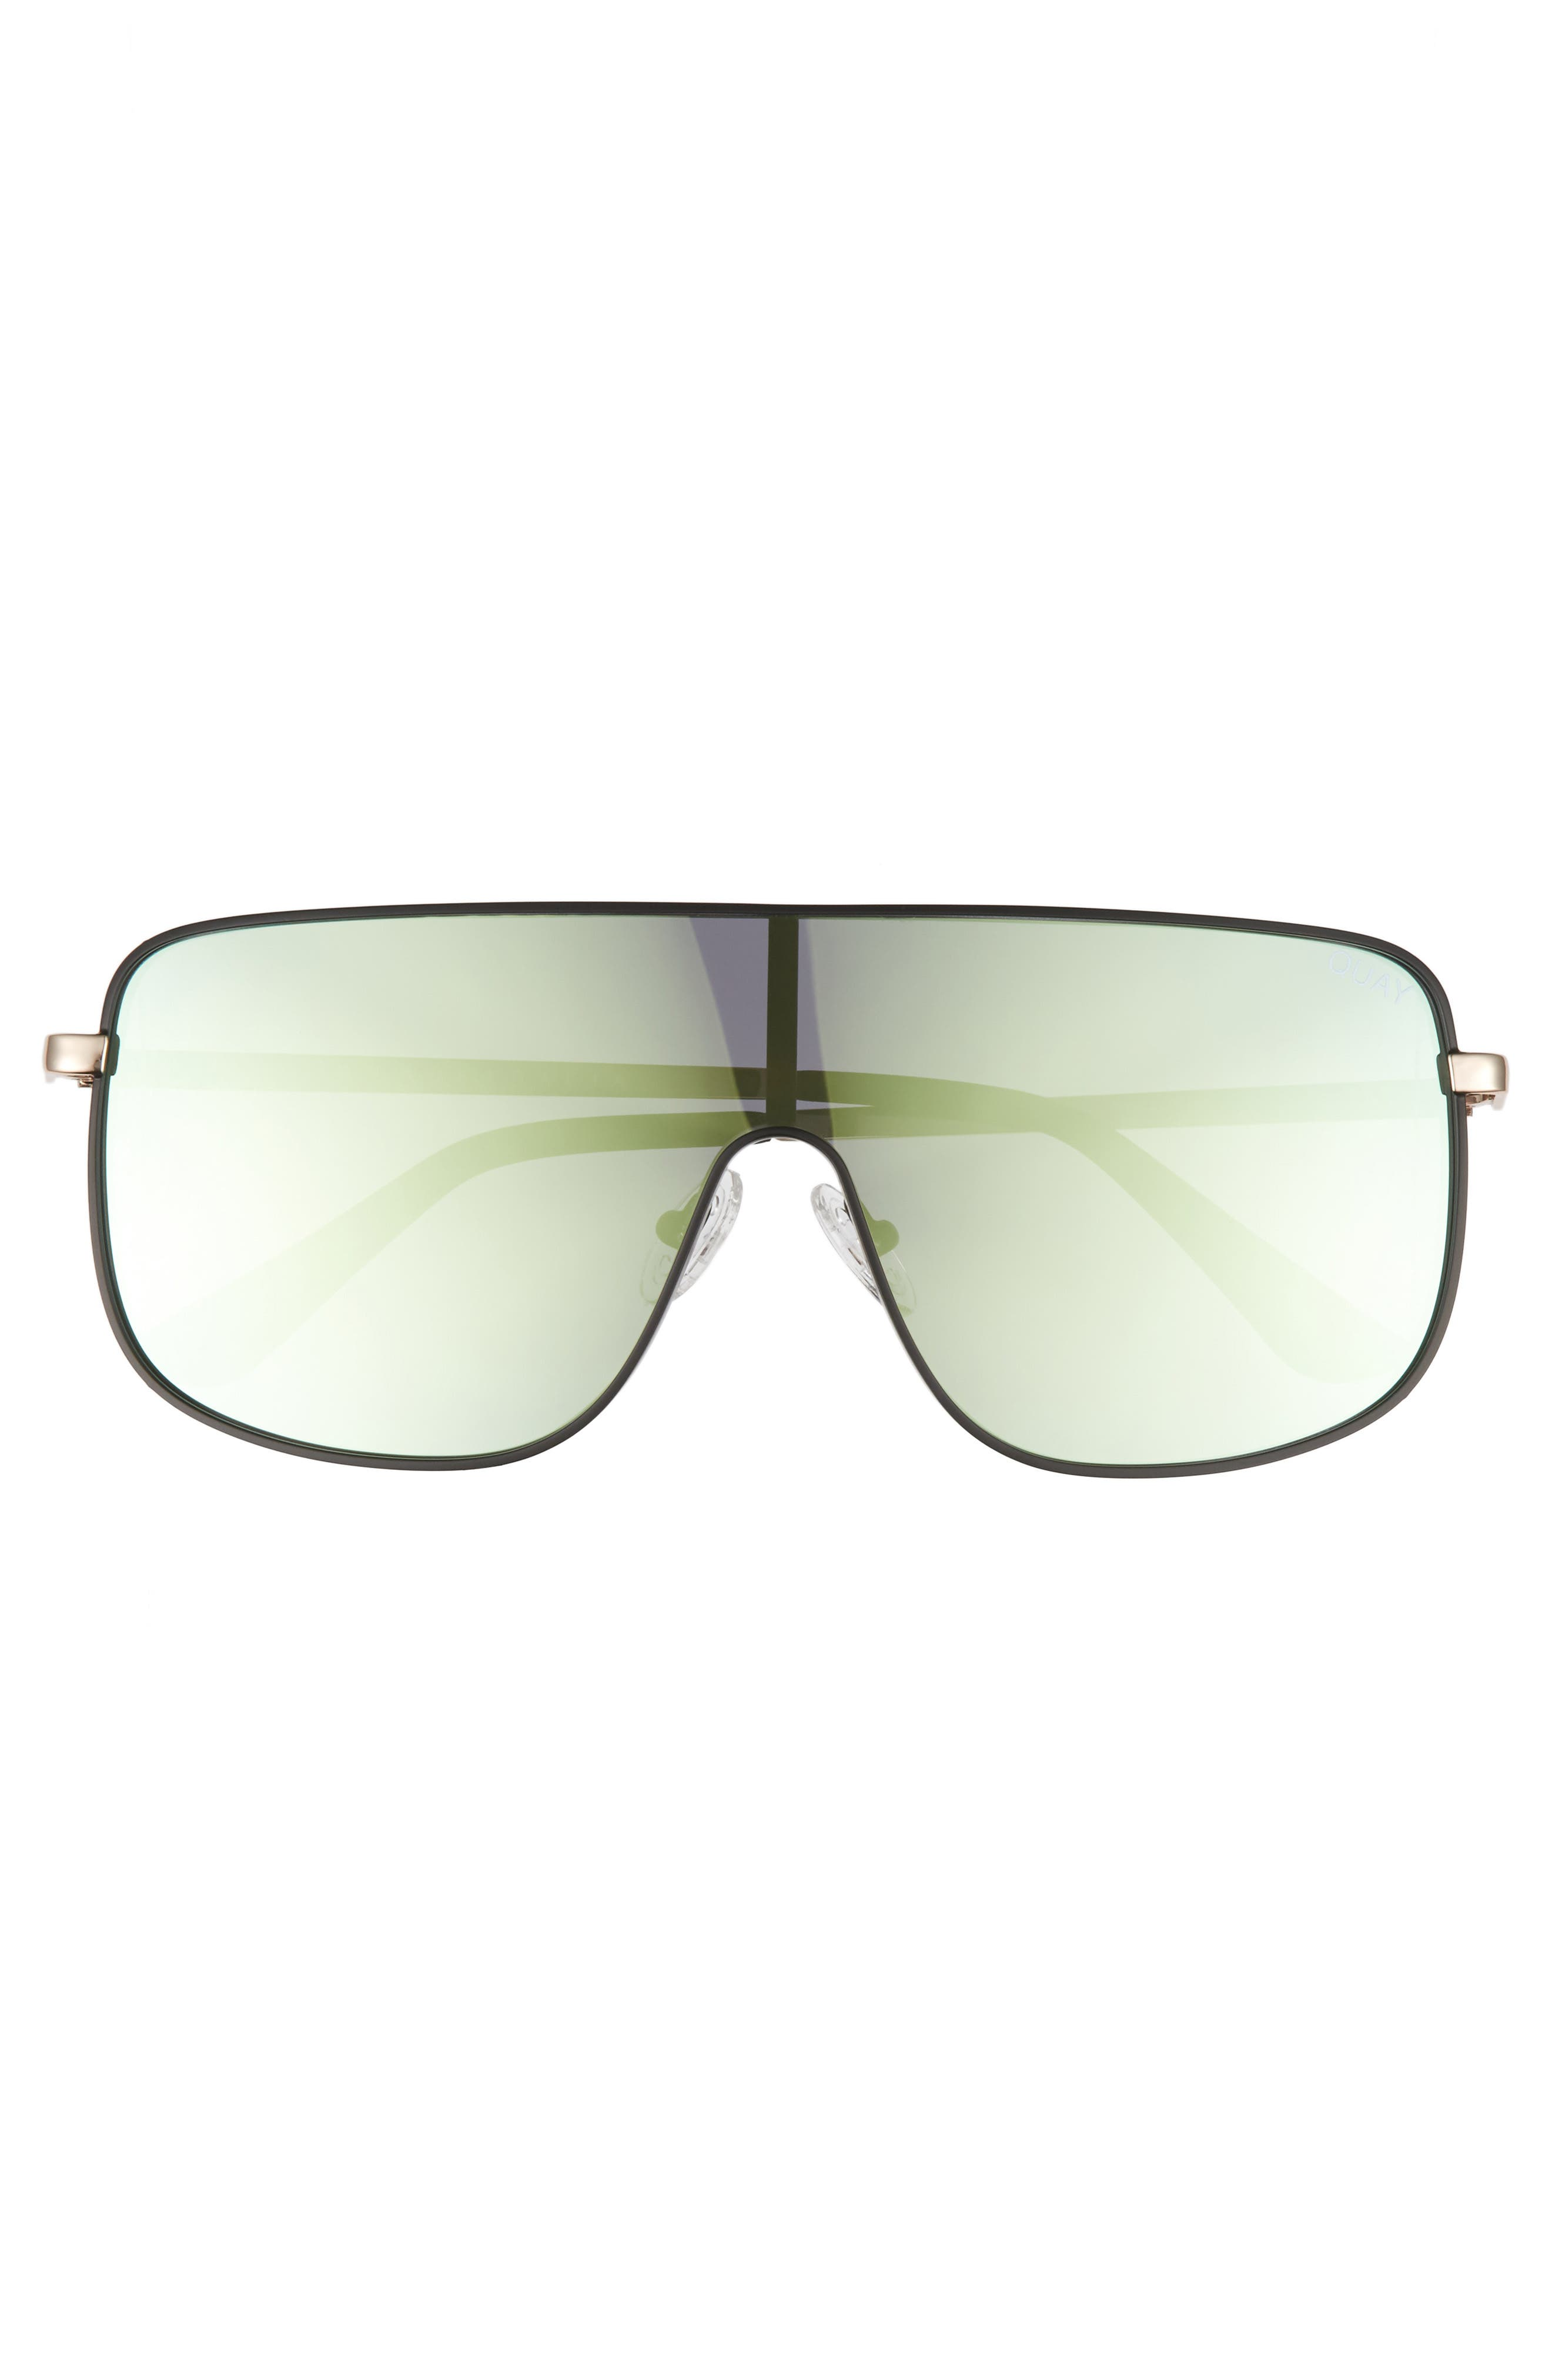 Unbothered 68mm Shield Sunglasses,                             Alternate thumbnail 3, color,                             001